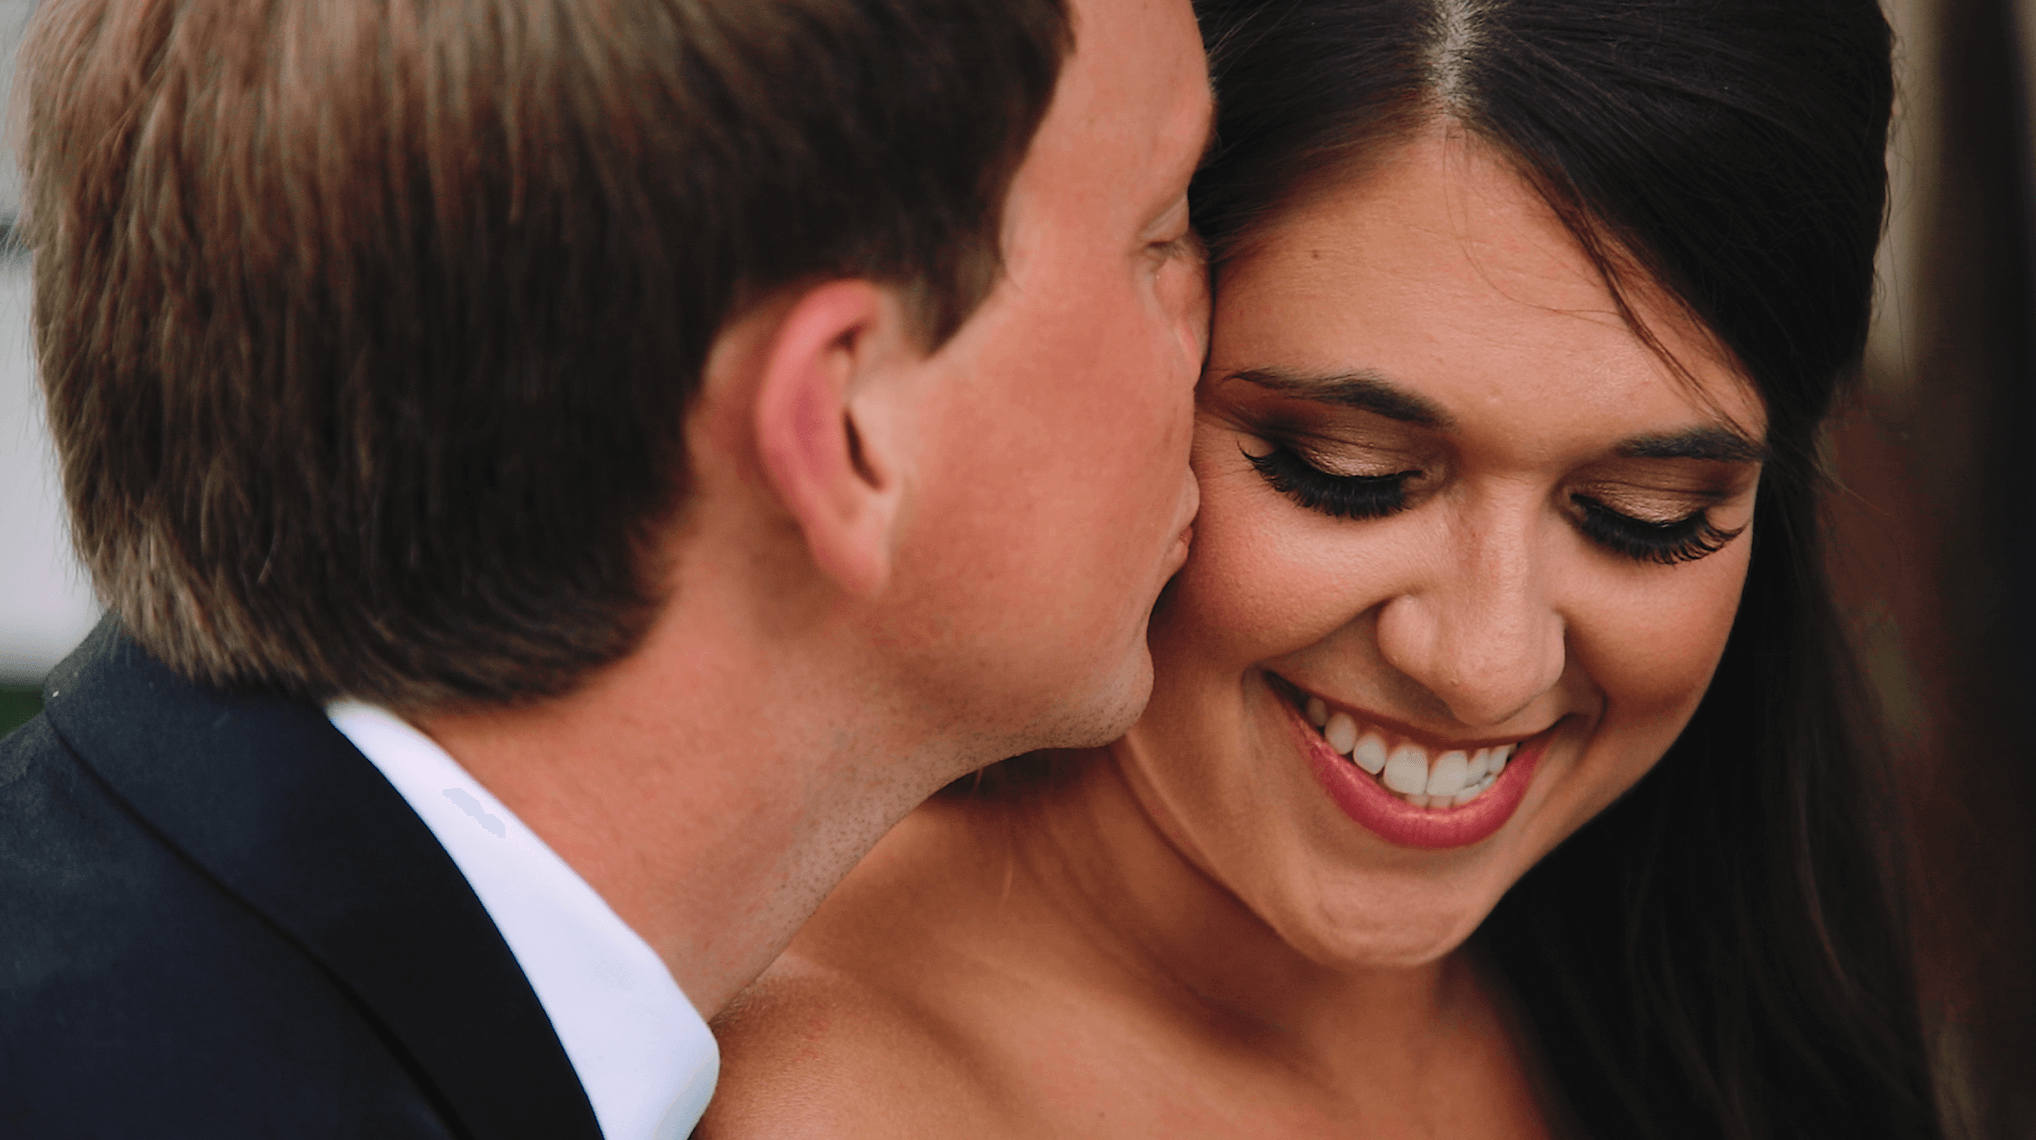 Ashleigh + John Thomas | Shreveport, Louisiana | Cathedral of St. John Berchmans